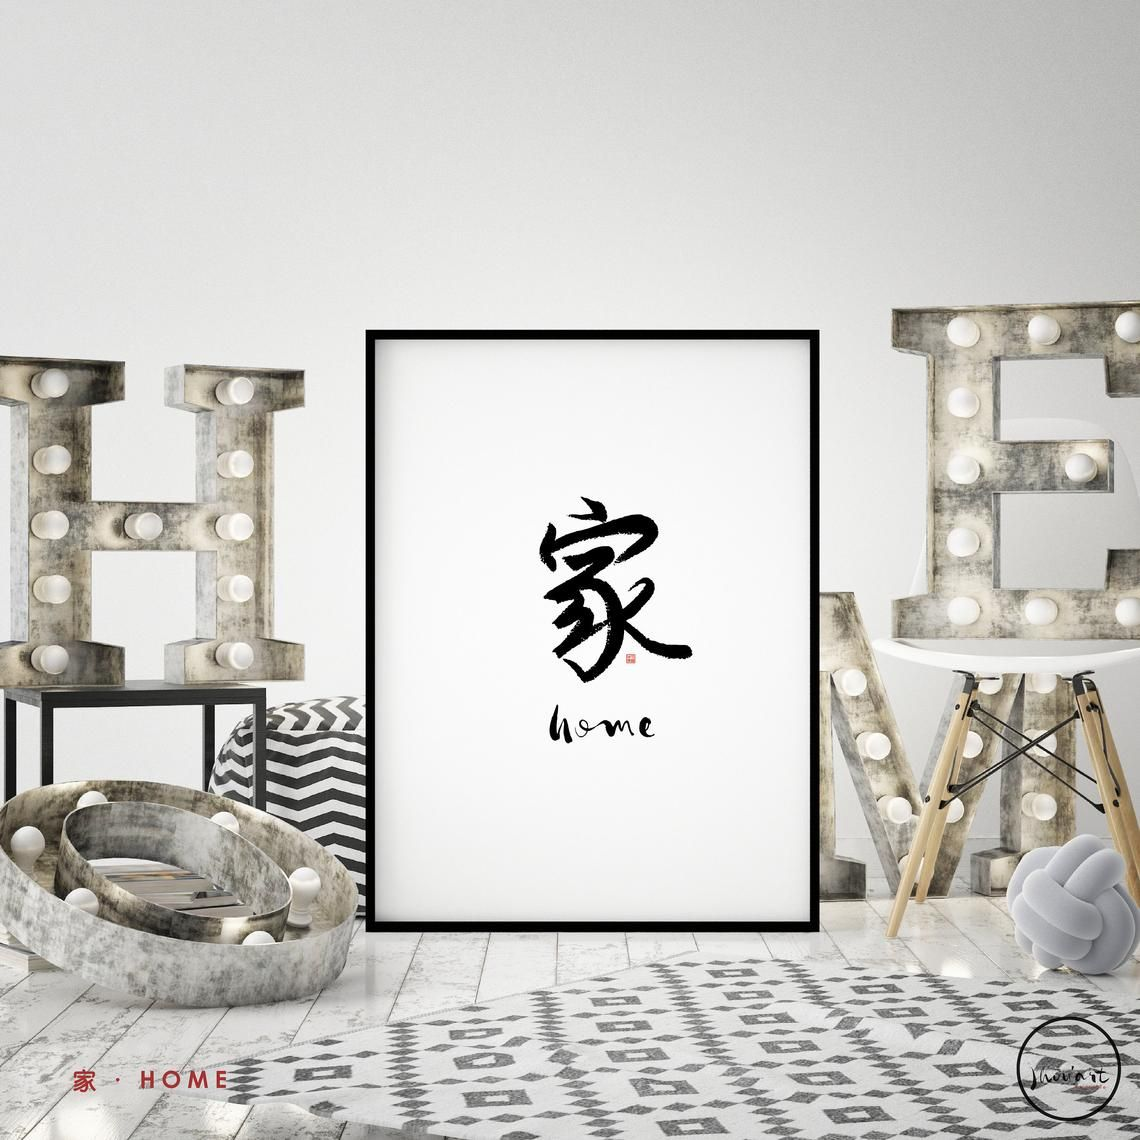 Home 家 Chinese Calligraphy Art Printable For Home Office Etsy